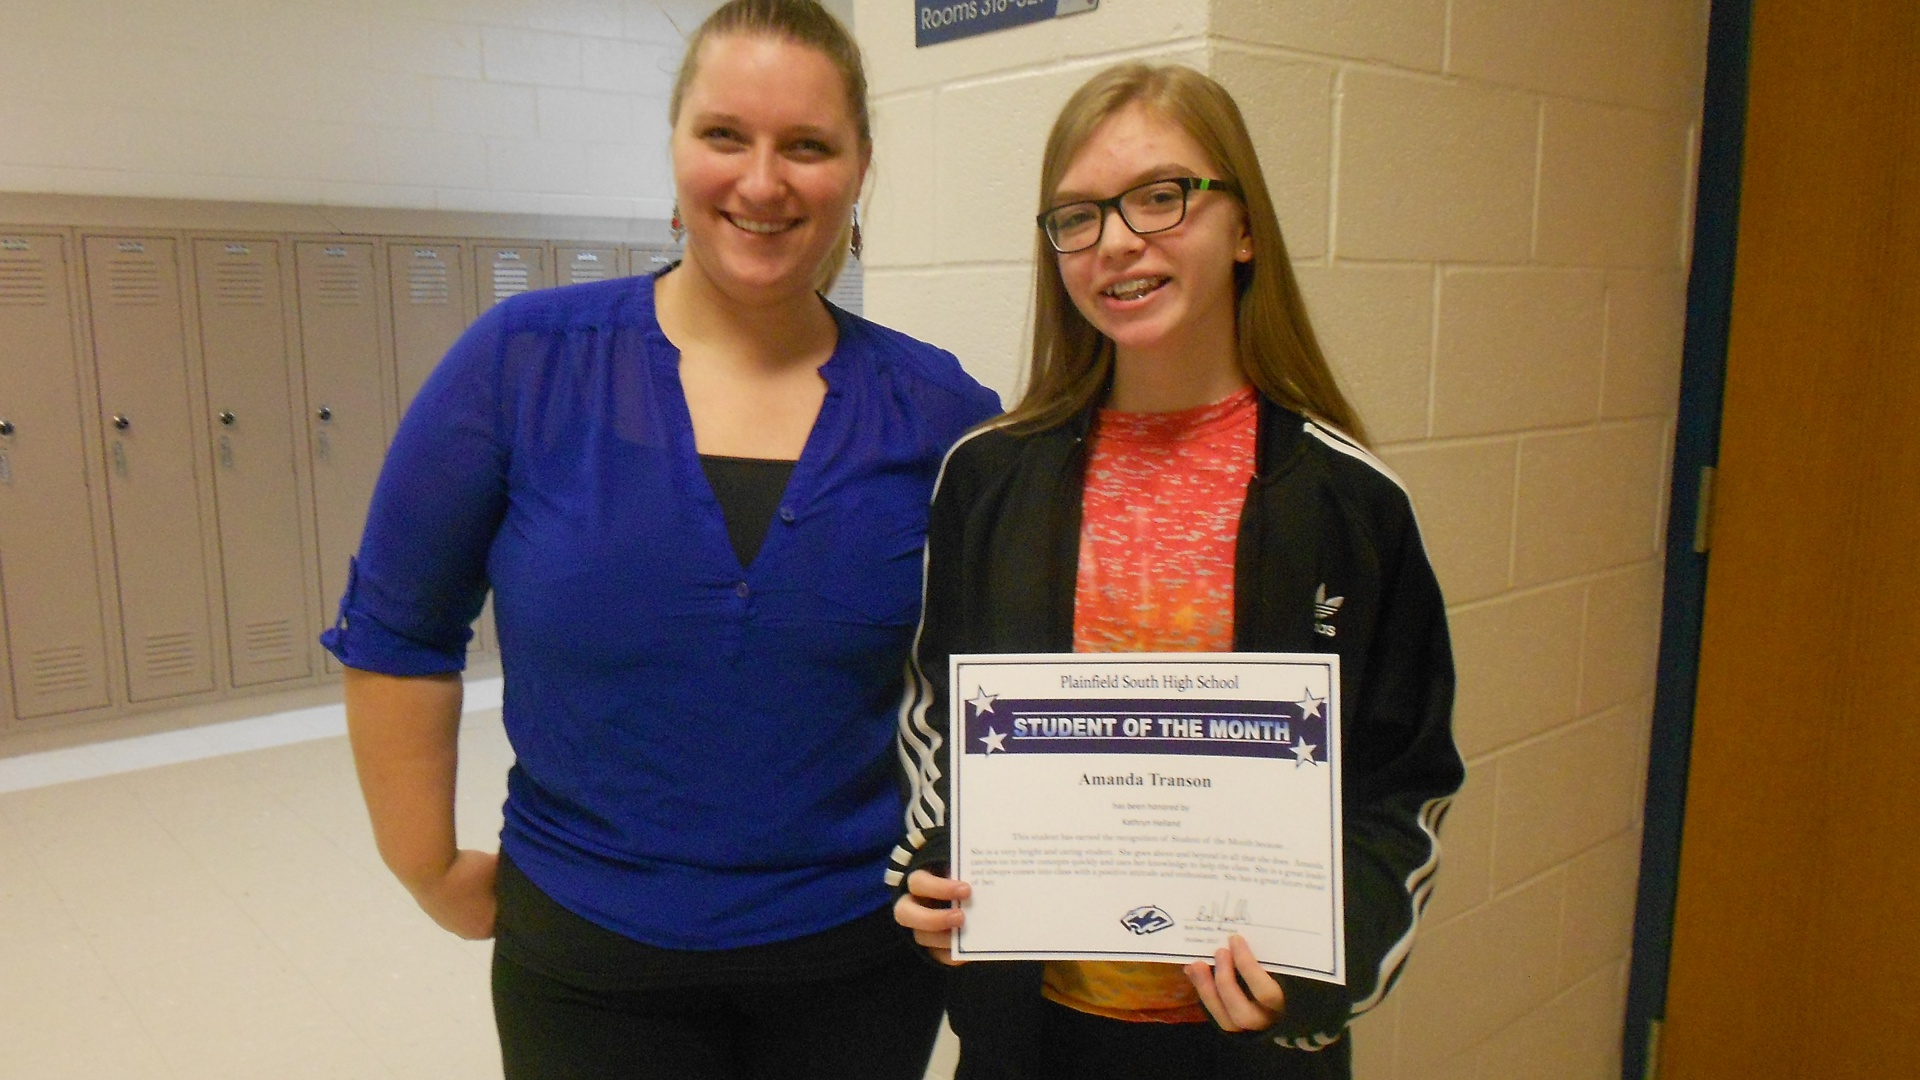 Student of the Month Amanda Transon